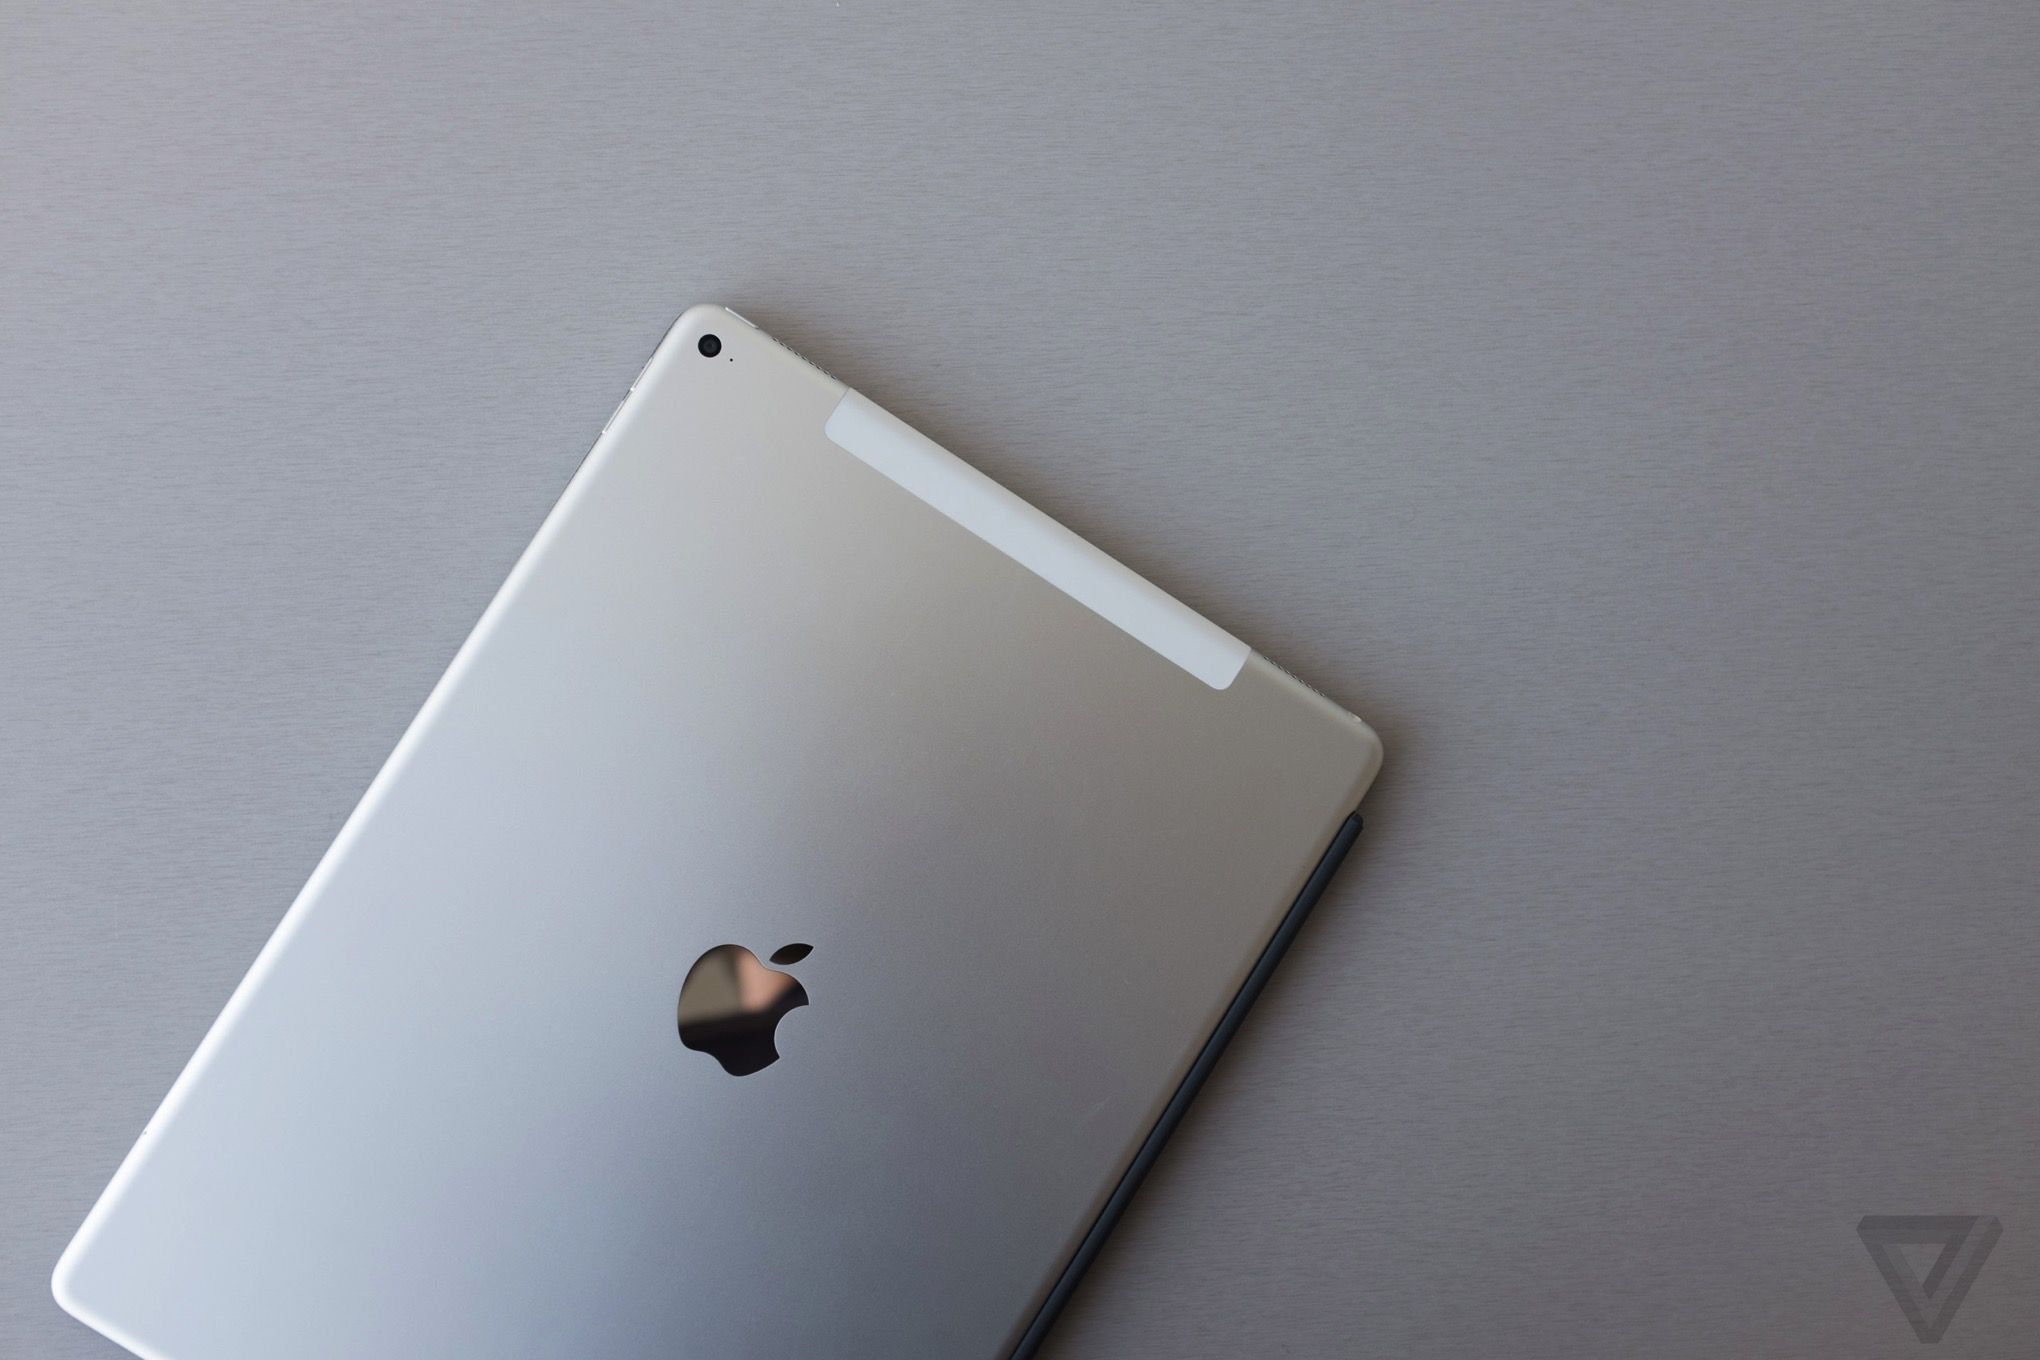 Would getting an Ipad for college be a good alternative to getting a laptop or no?